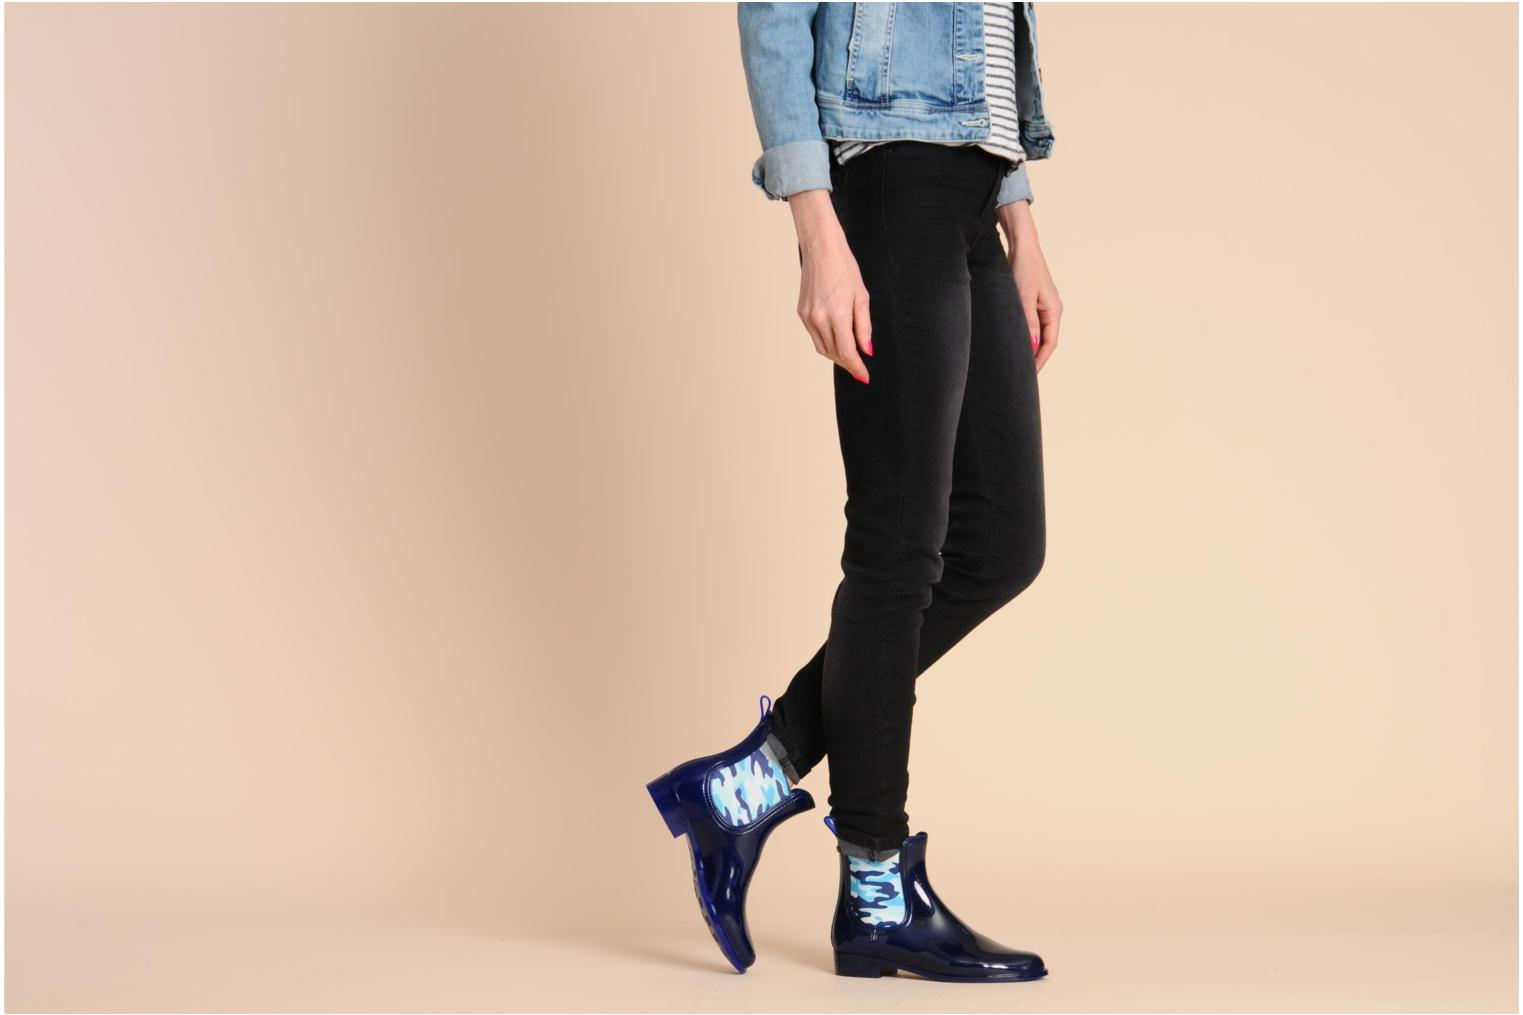 Lemon Jelly Ginseng Ankle Boots In Blue At Sarenza Co Uk